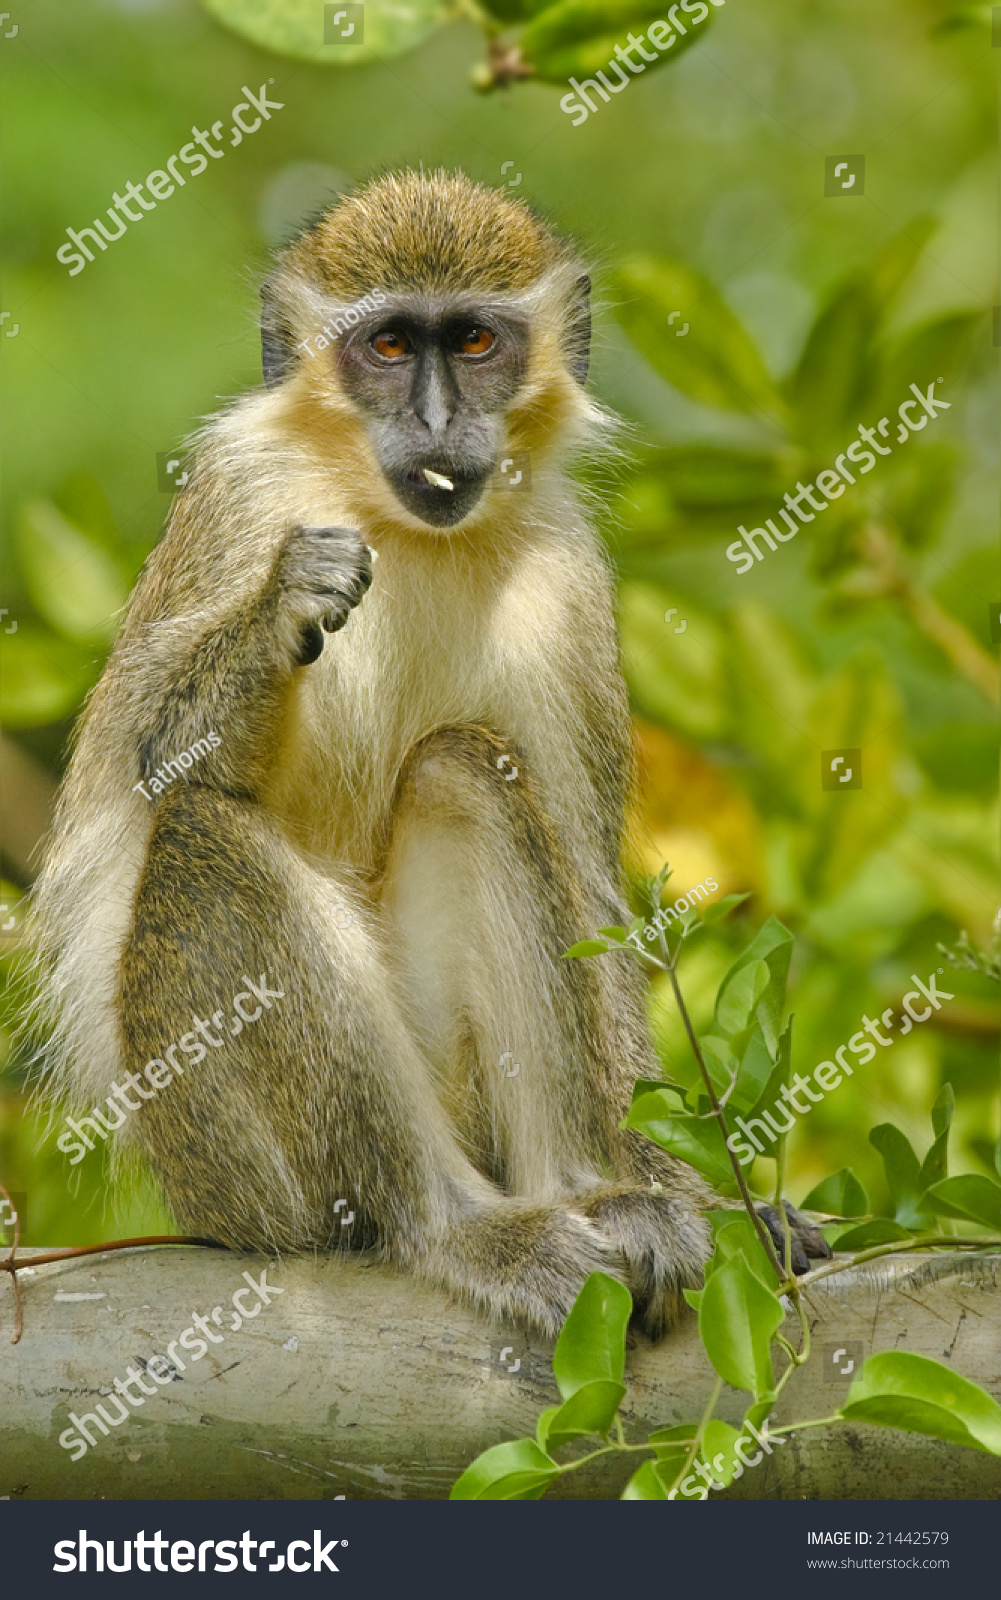 Green Monkey in the wild habitat, cercopithecus sabaeus